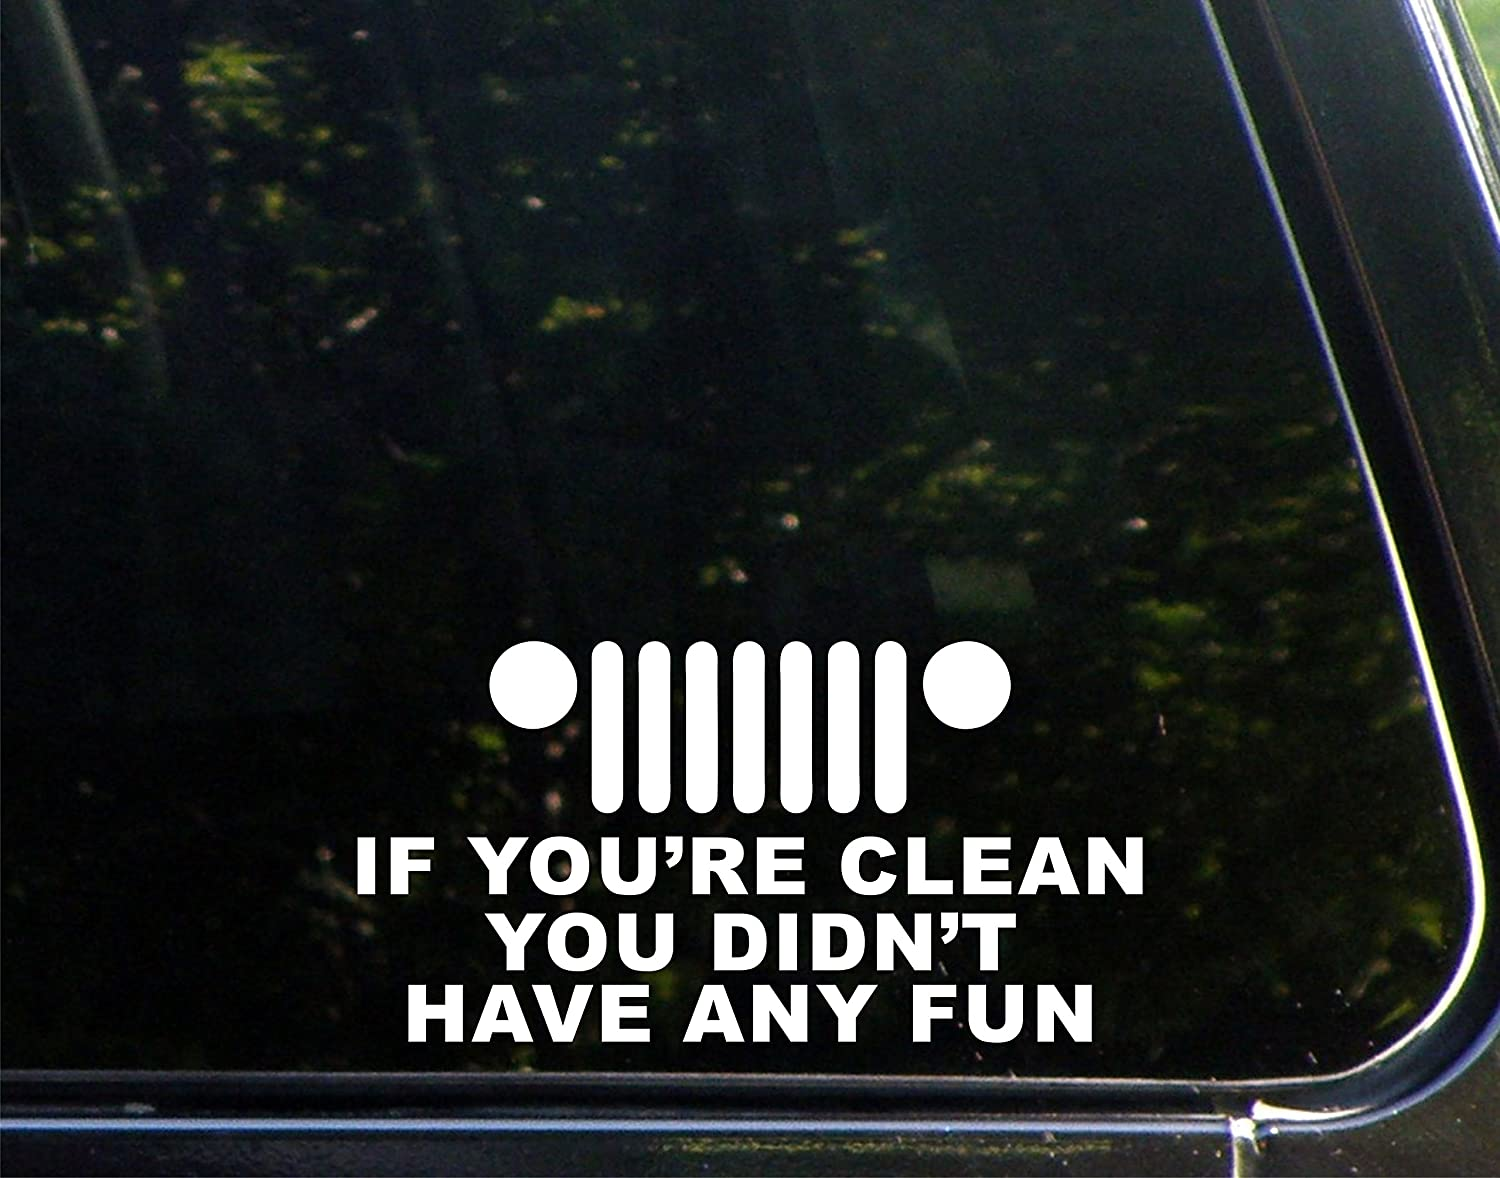 Outdoors Funny Decal for Car F It Decal etc. Windows